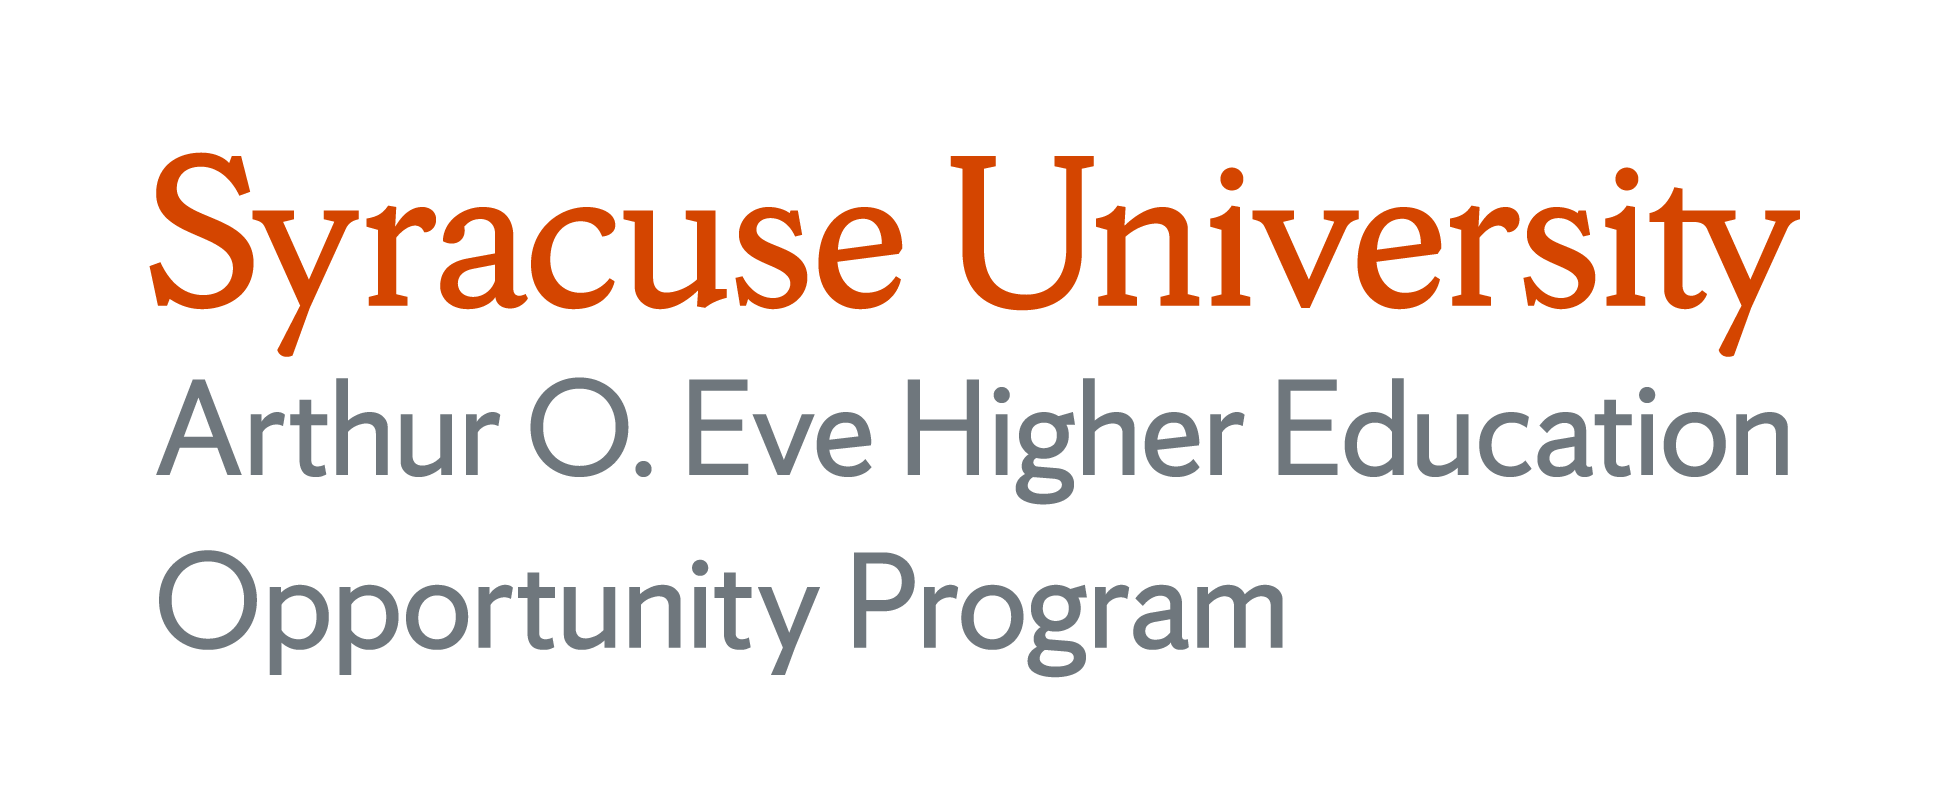 Syracuse University Arthur O. Eve Higher Education Opportunity Program